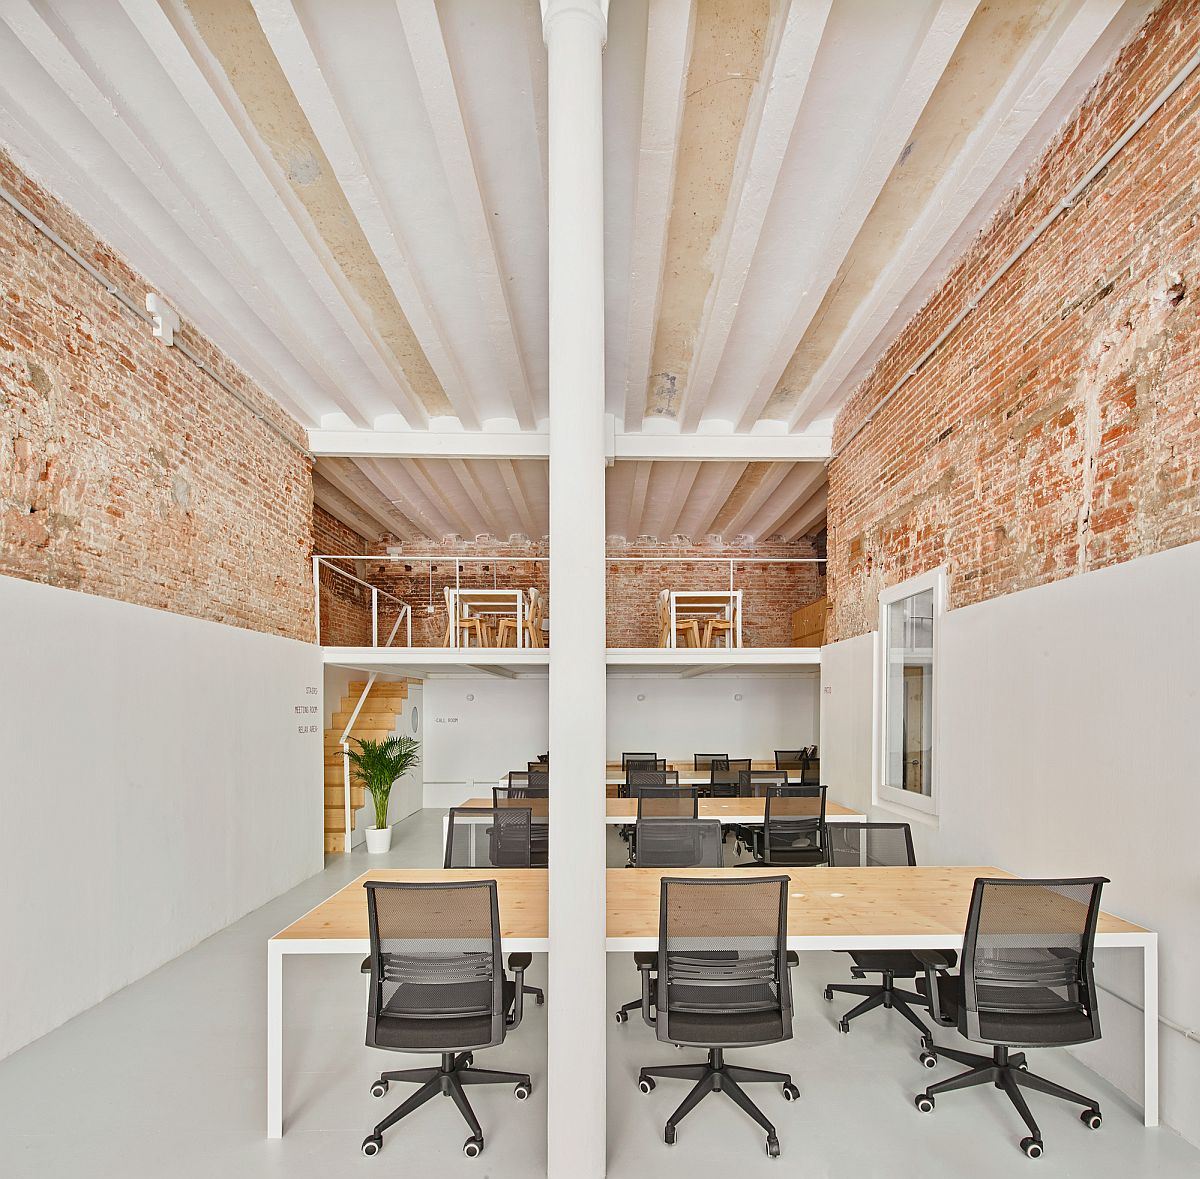 Bricks, casted steel columns and spacious interior in white shape this fabulous office